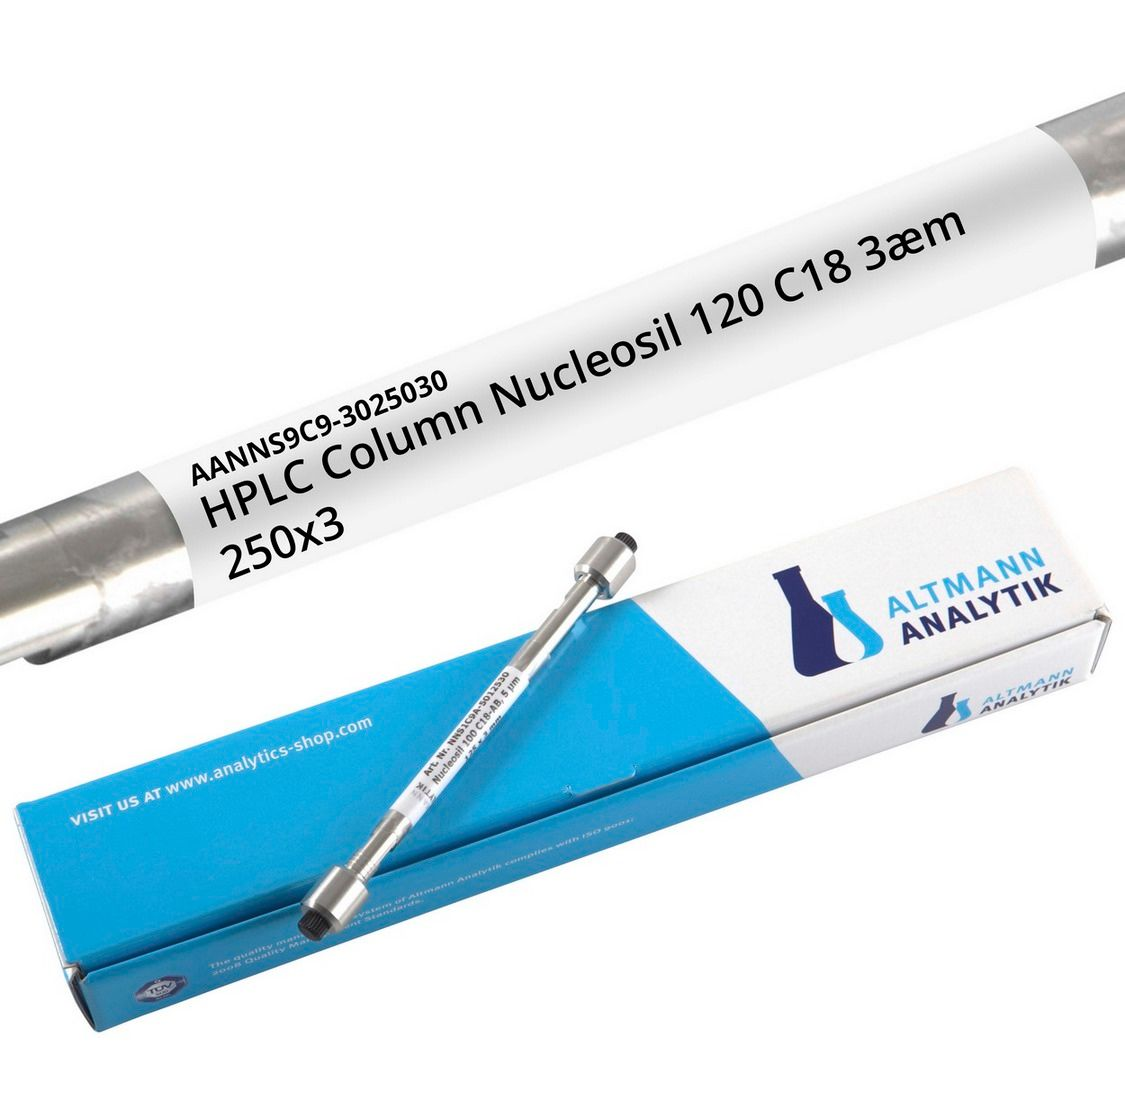 HPLC Column Nucleosil 120 C18 3µm 250x3 mm, endcapped, 120A